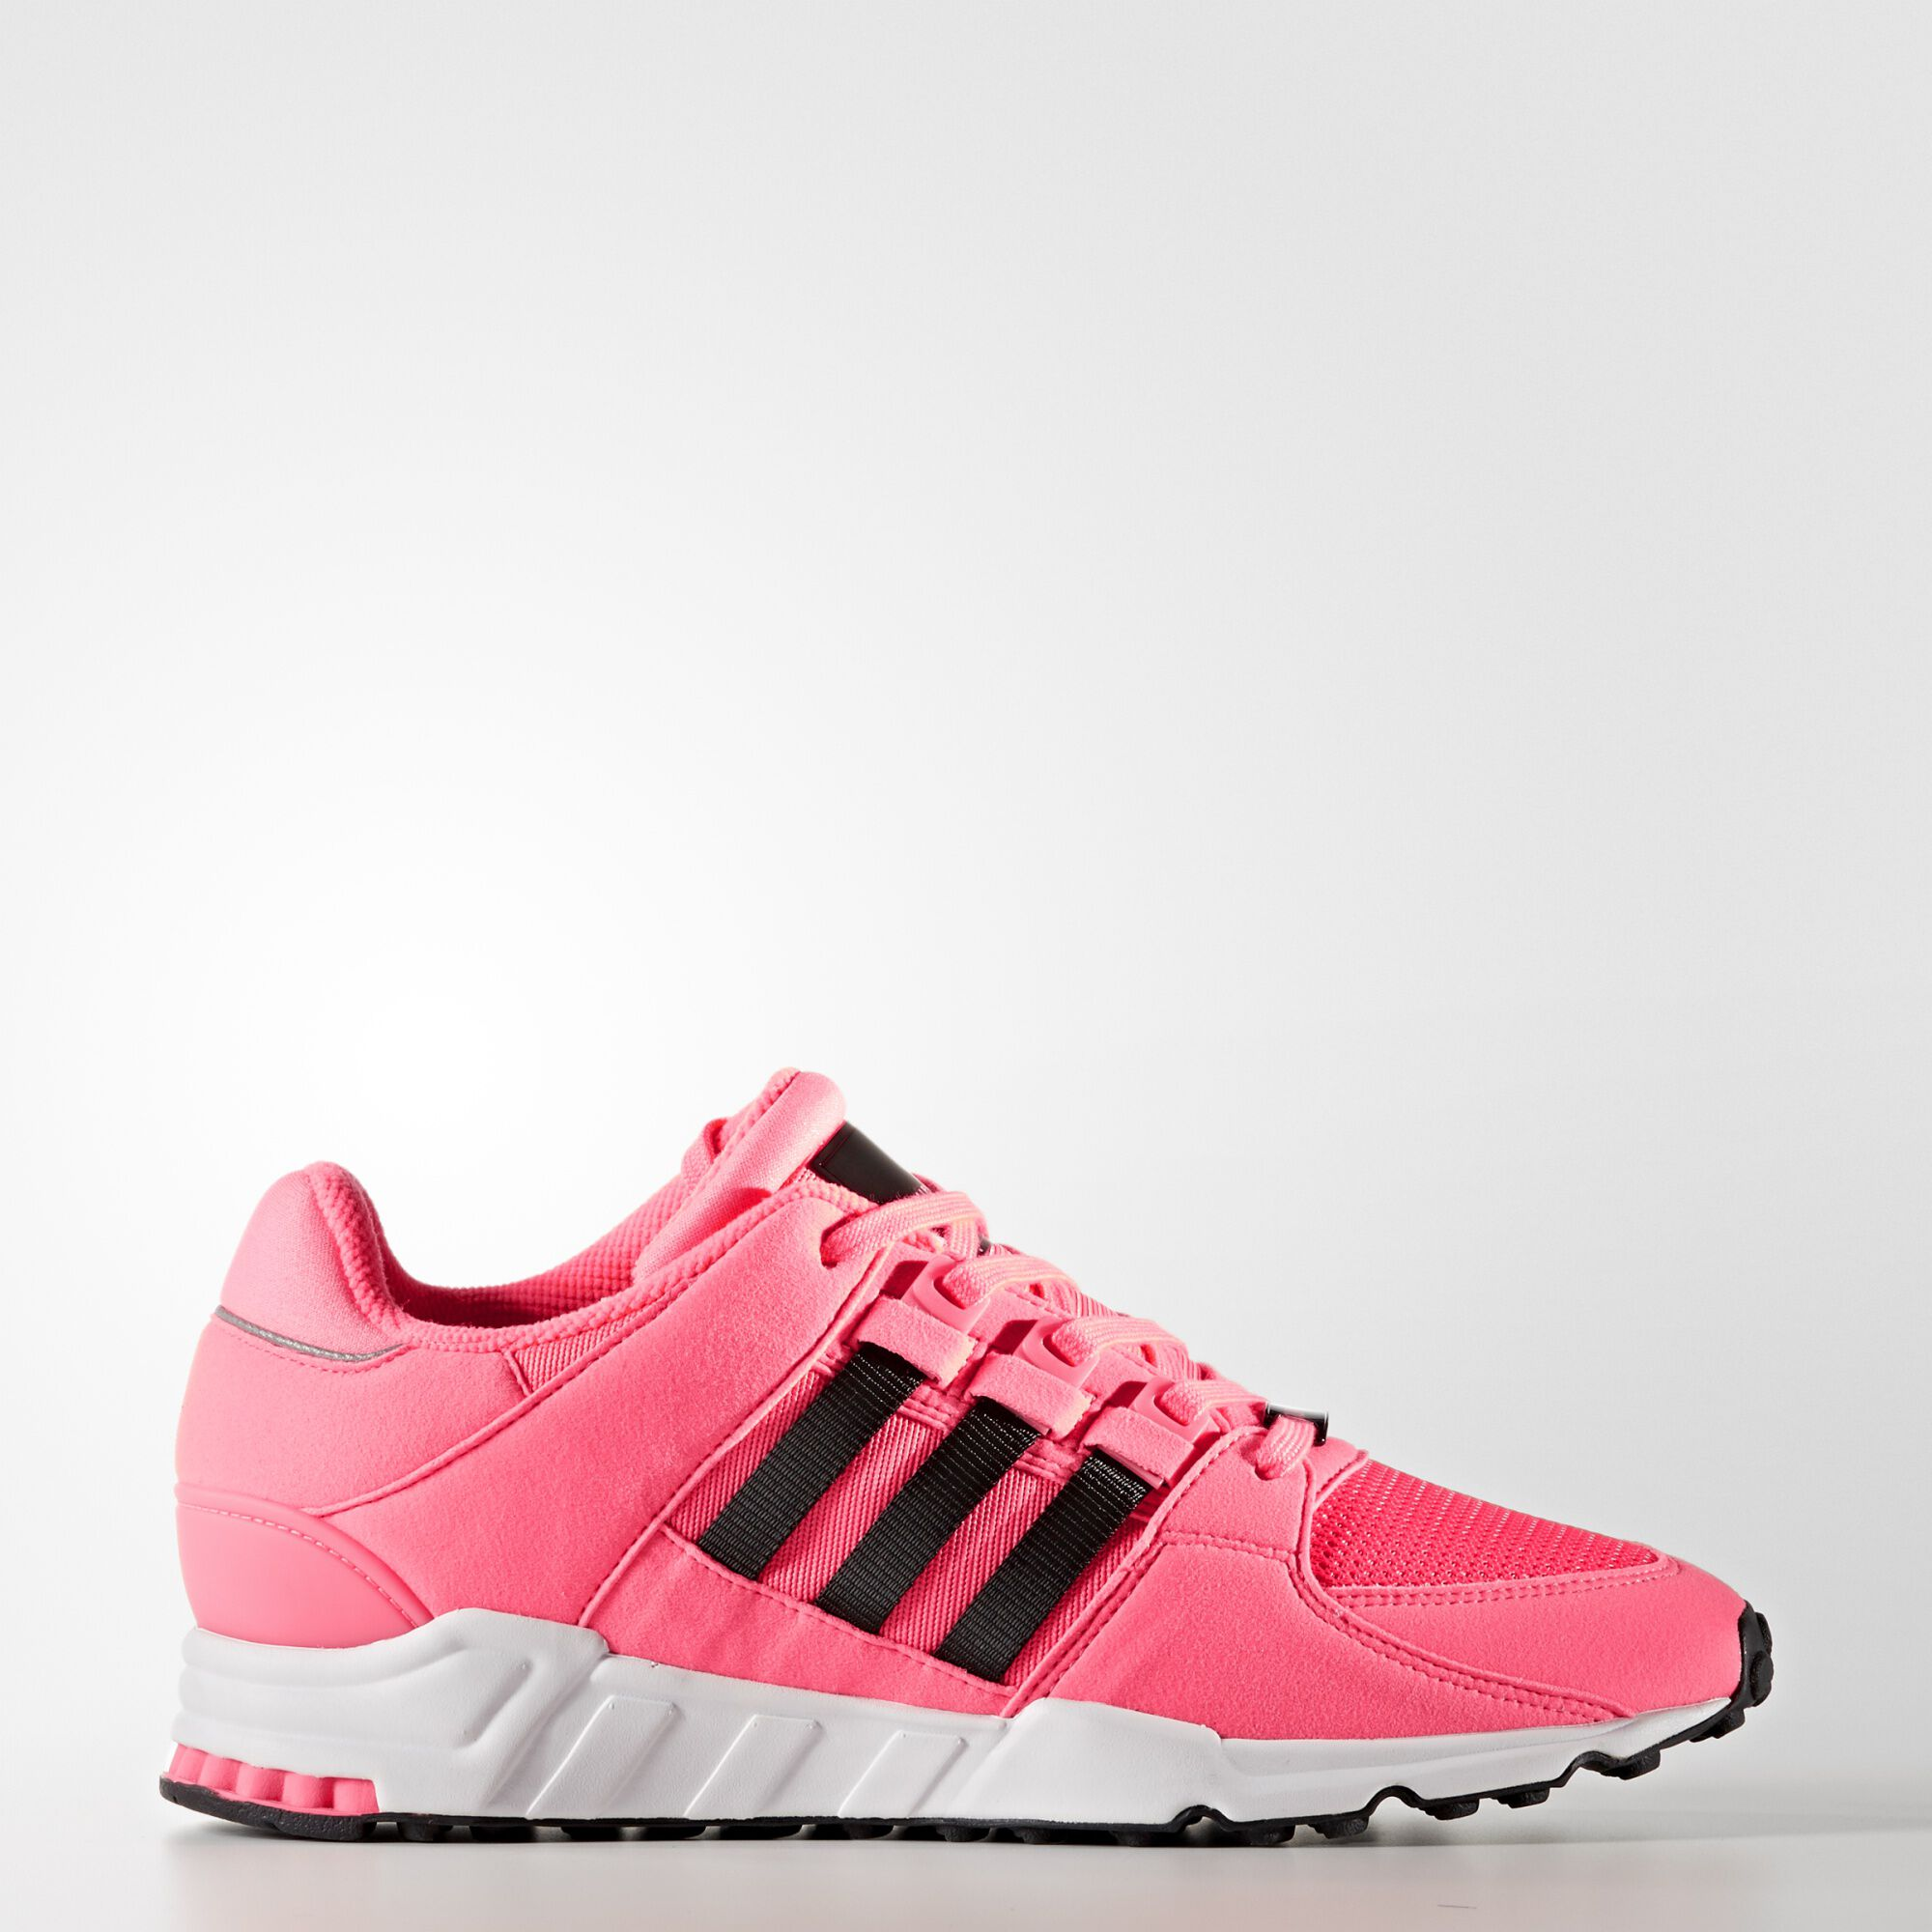 Athletic in Brand:Cheap Adidas, US Shoe Size (Men's):12, Product Line:EQT